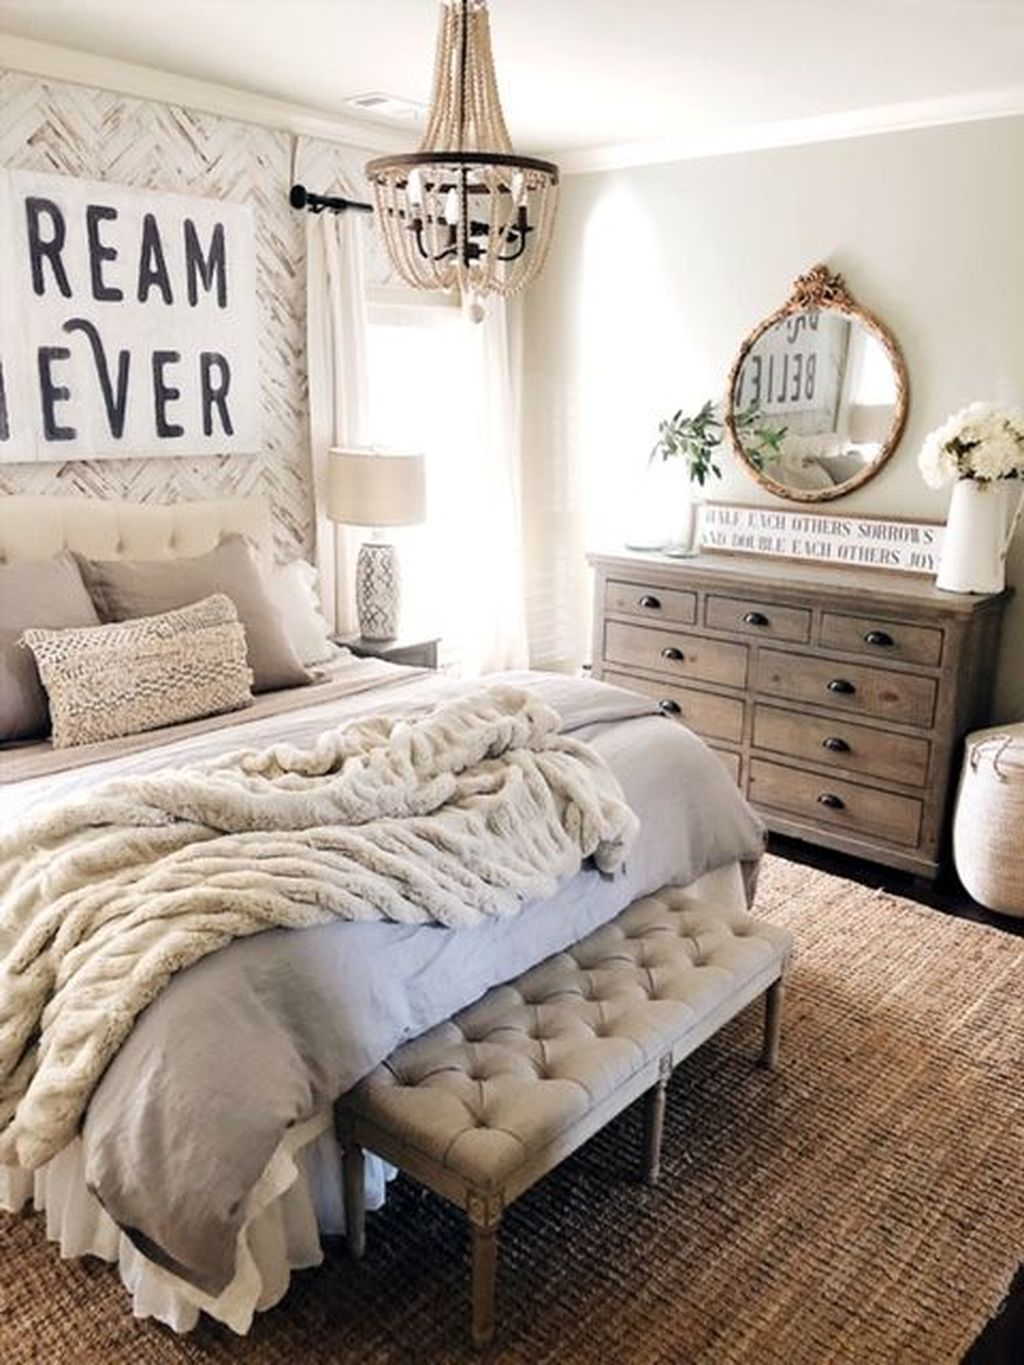 Admiring Bedroom Decor Ideas To Have Right Now 20